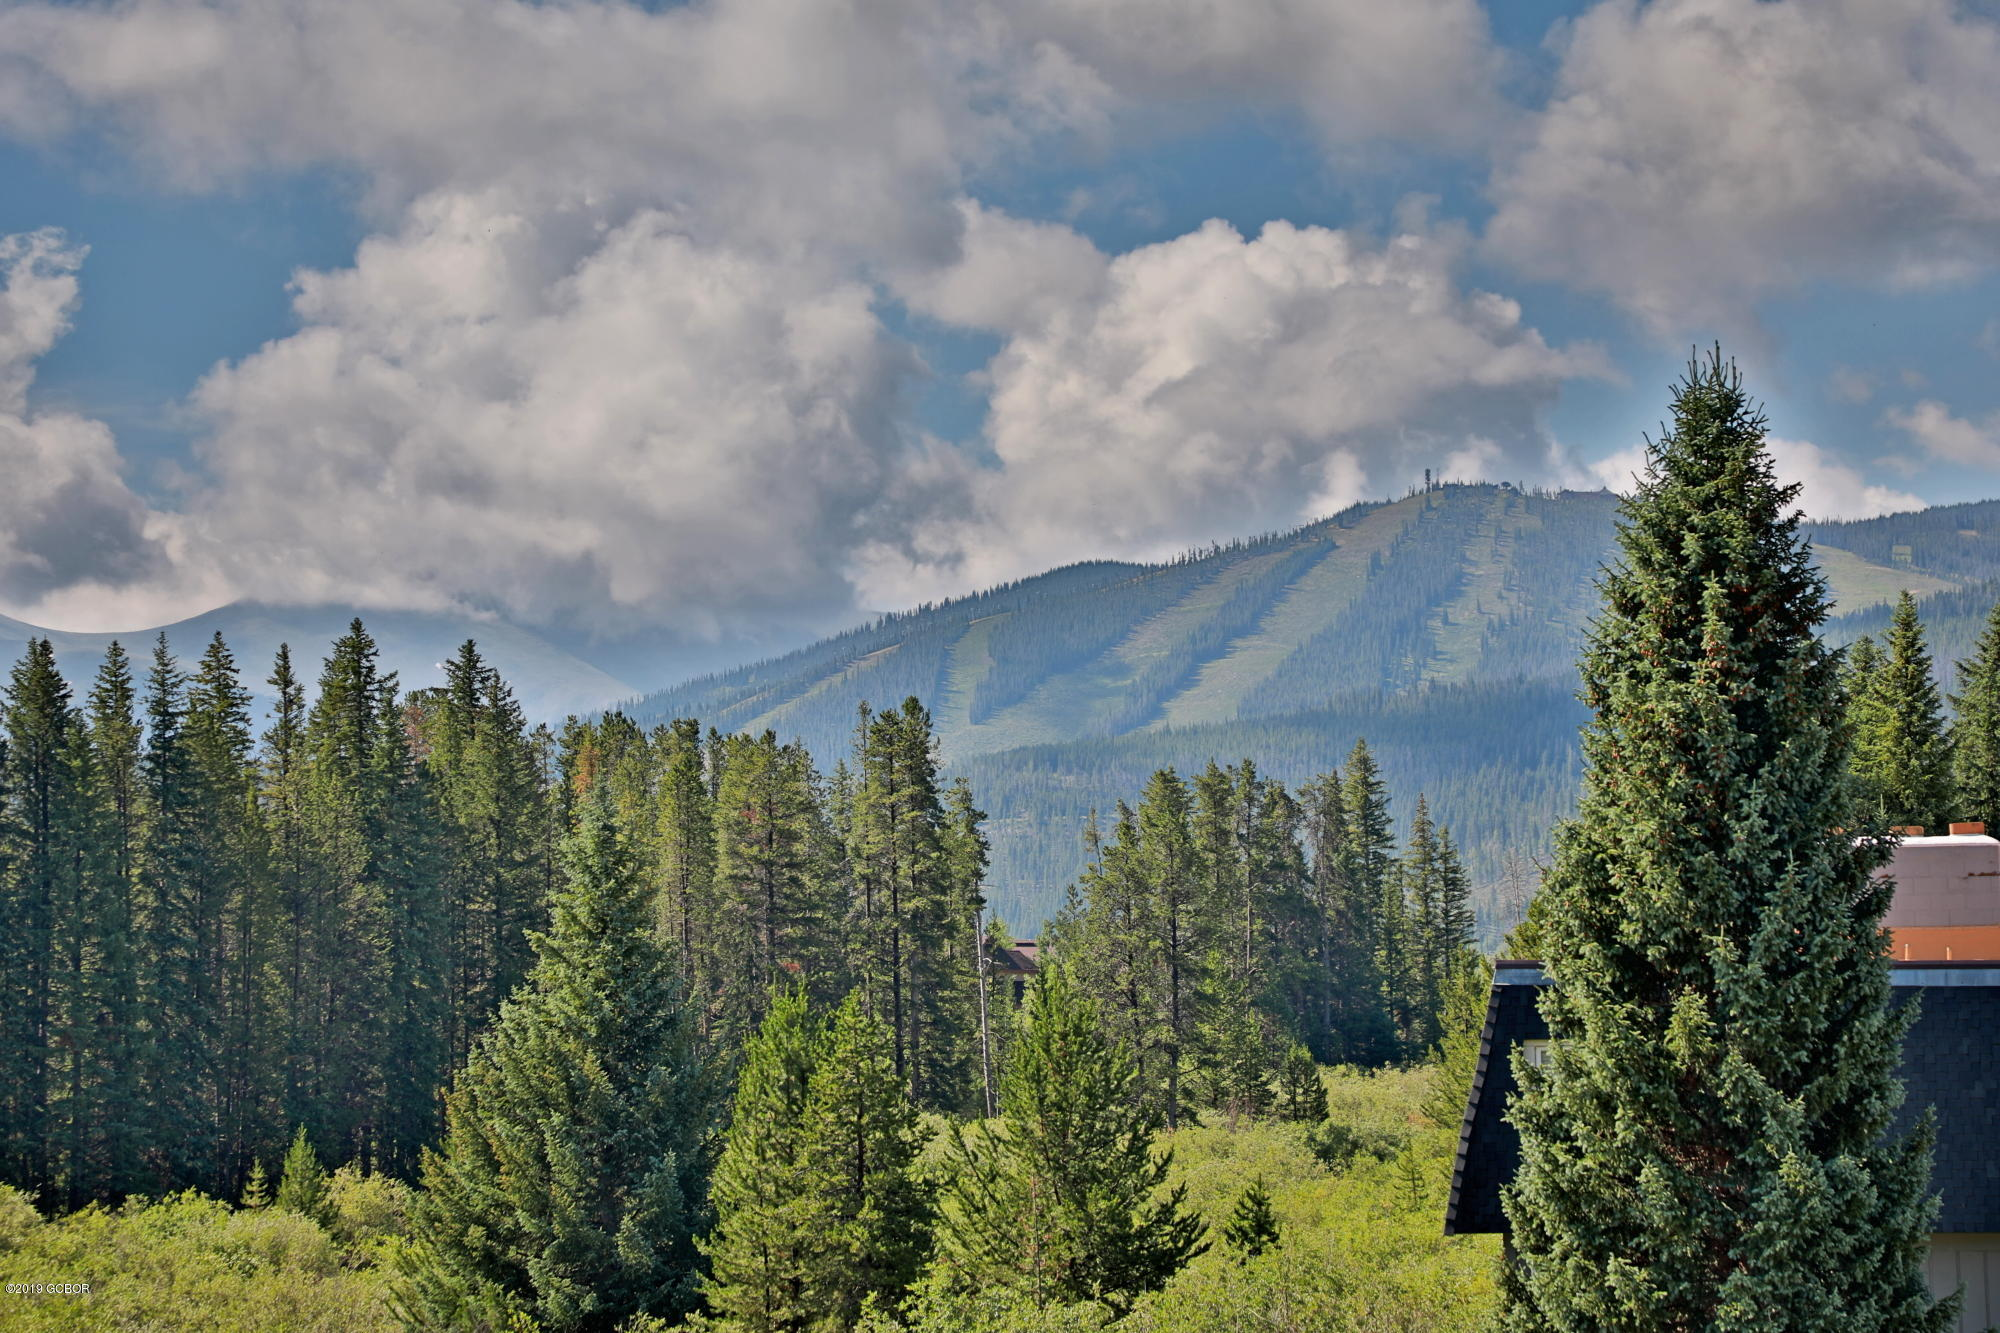 MLS# 19-1127 - 2 - 186 Hi Country Drive #, Winter Park, CO 80482